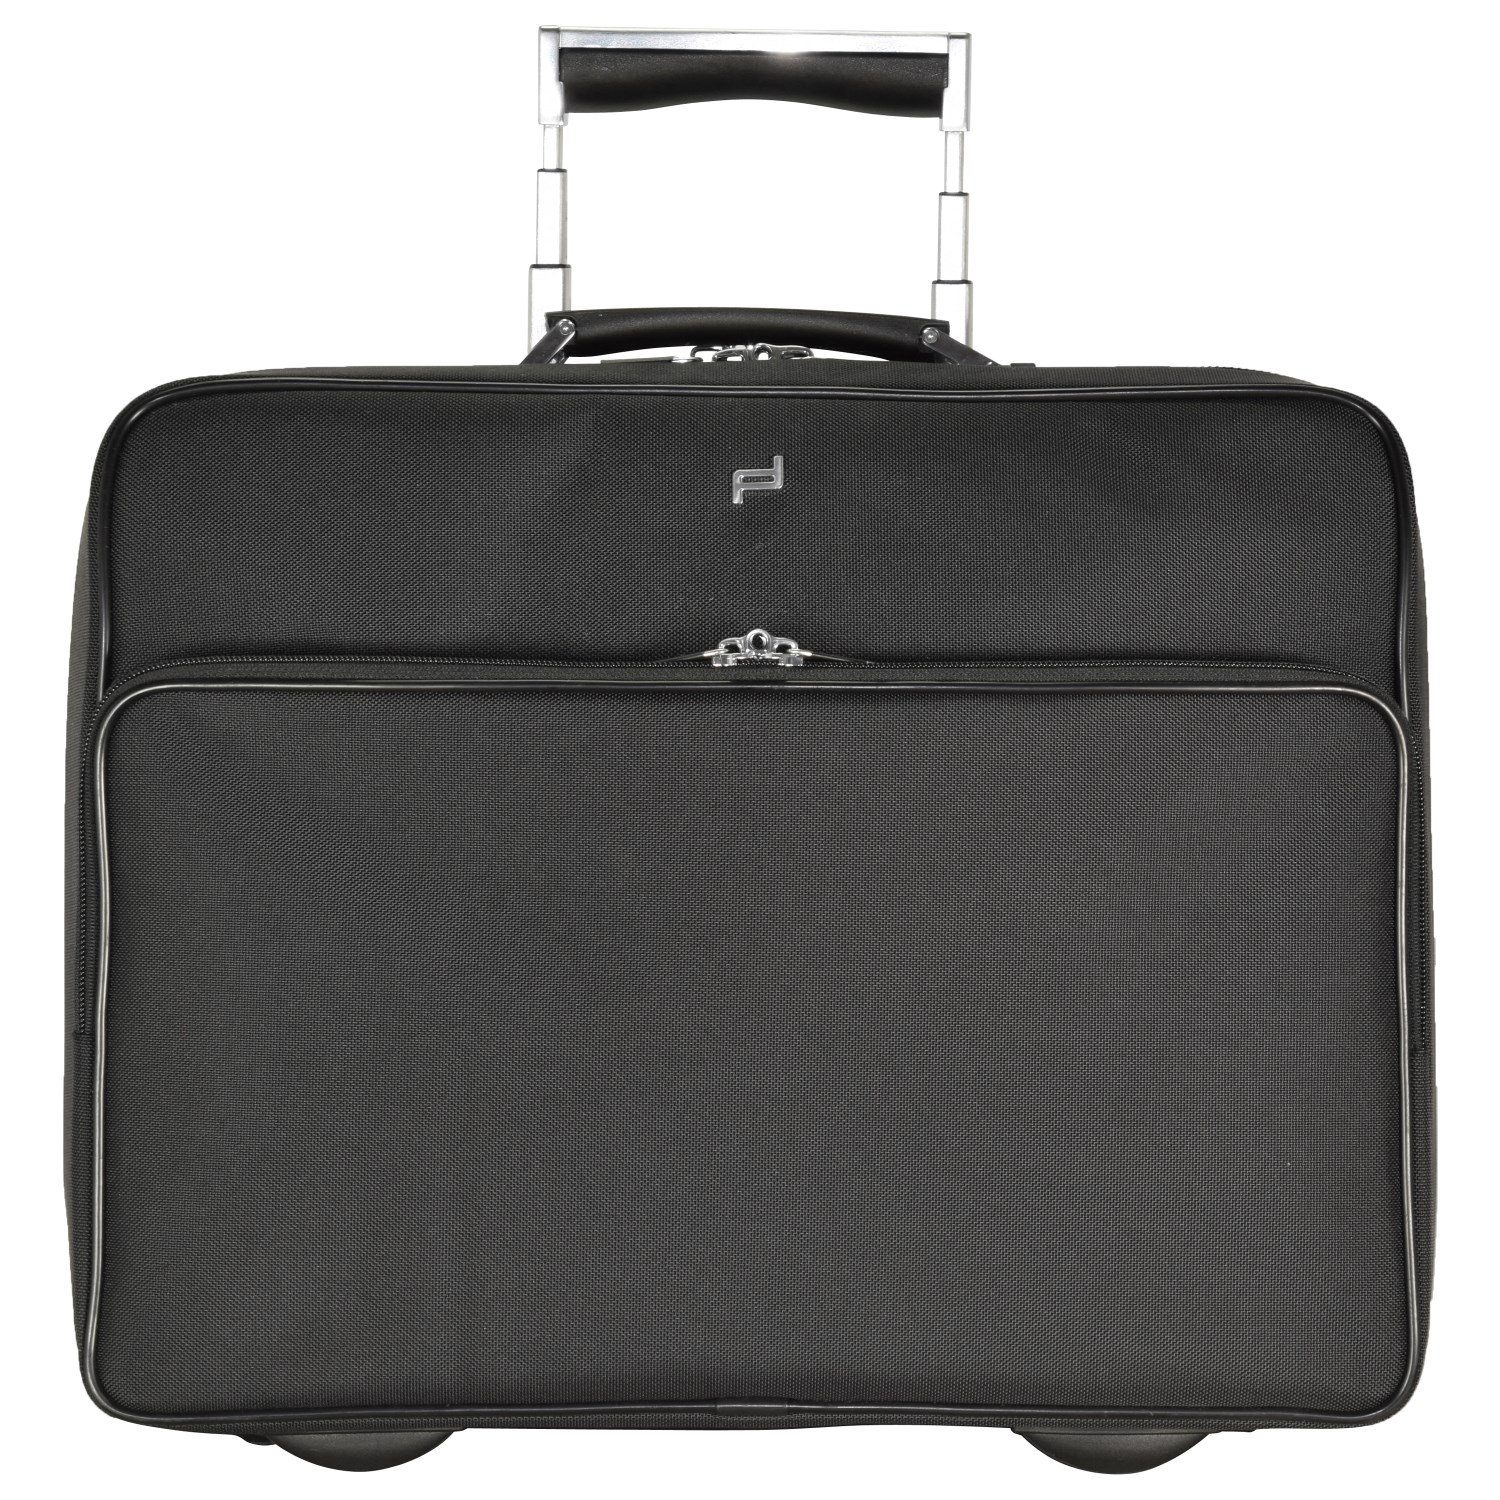 Porsche Design Roadster 3.0 Brief Bag M 2-Rollen Trolley 44 cm Laptopfach